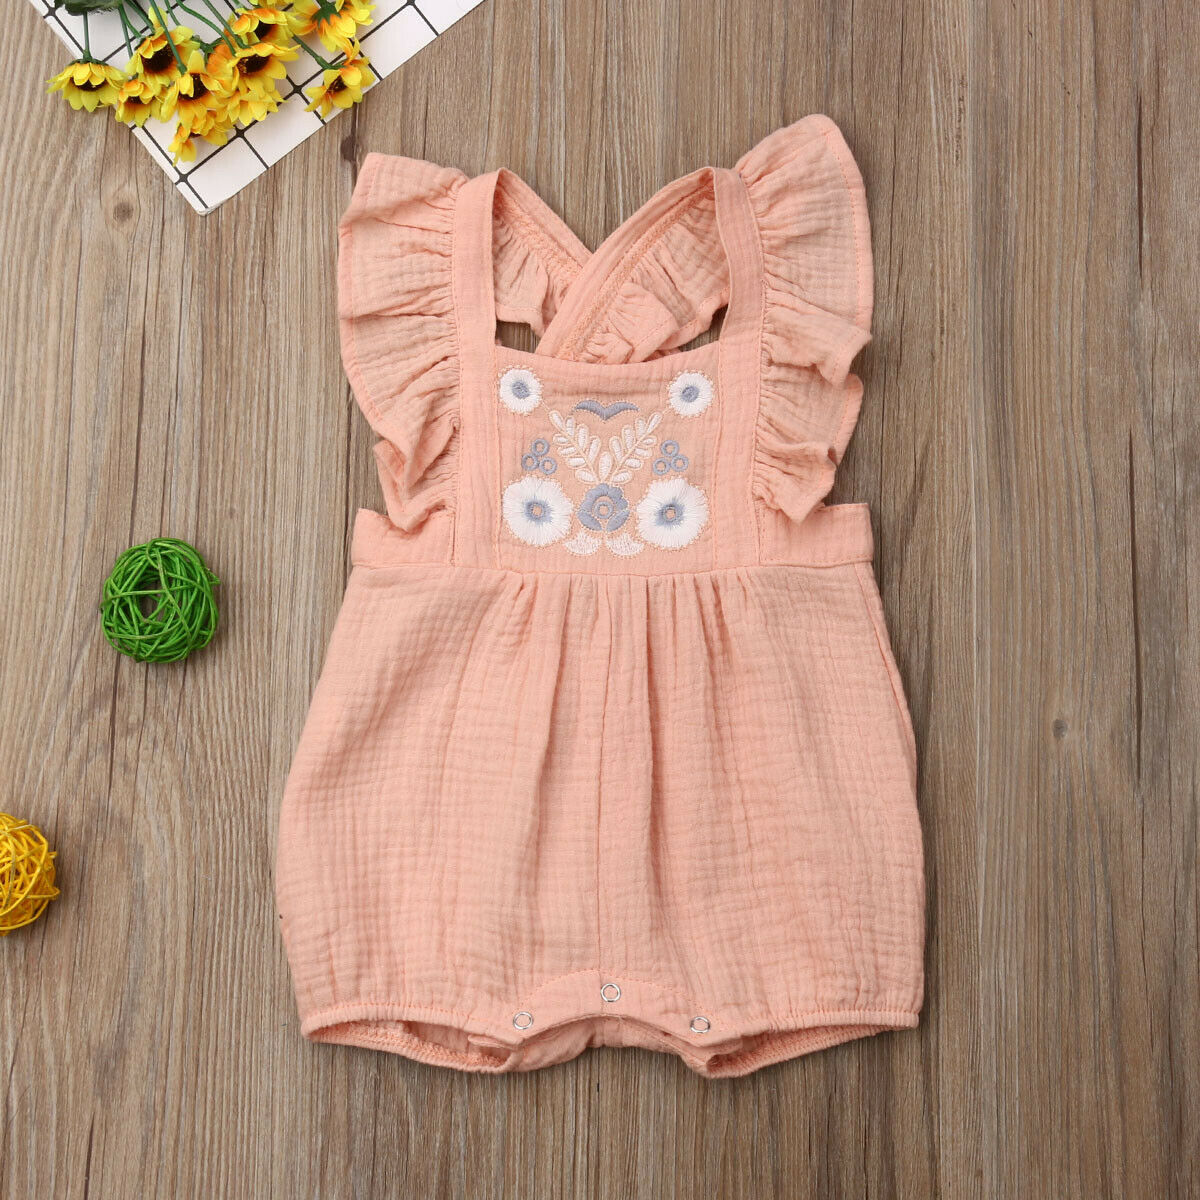 Newborn Baby Girls Ruffle Short   Romper   Cotton   Rompers   Outfits Sunsuit Summer 0-24M